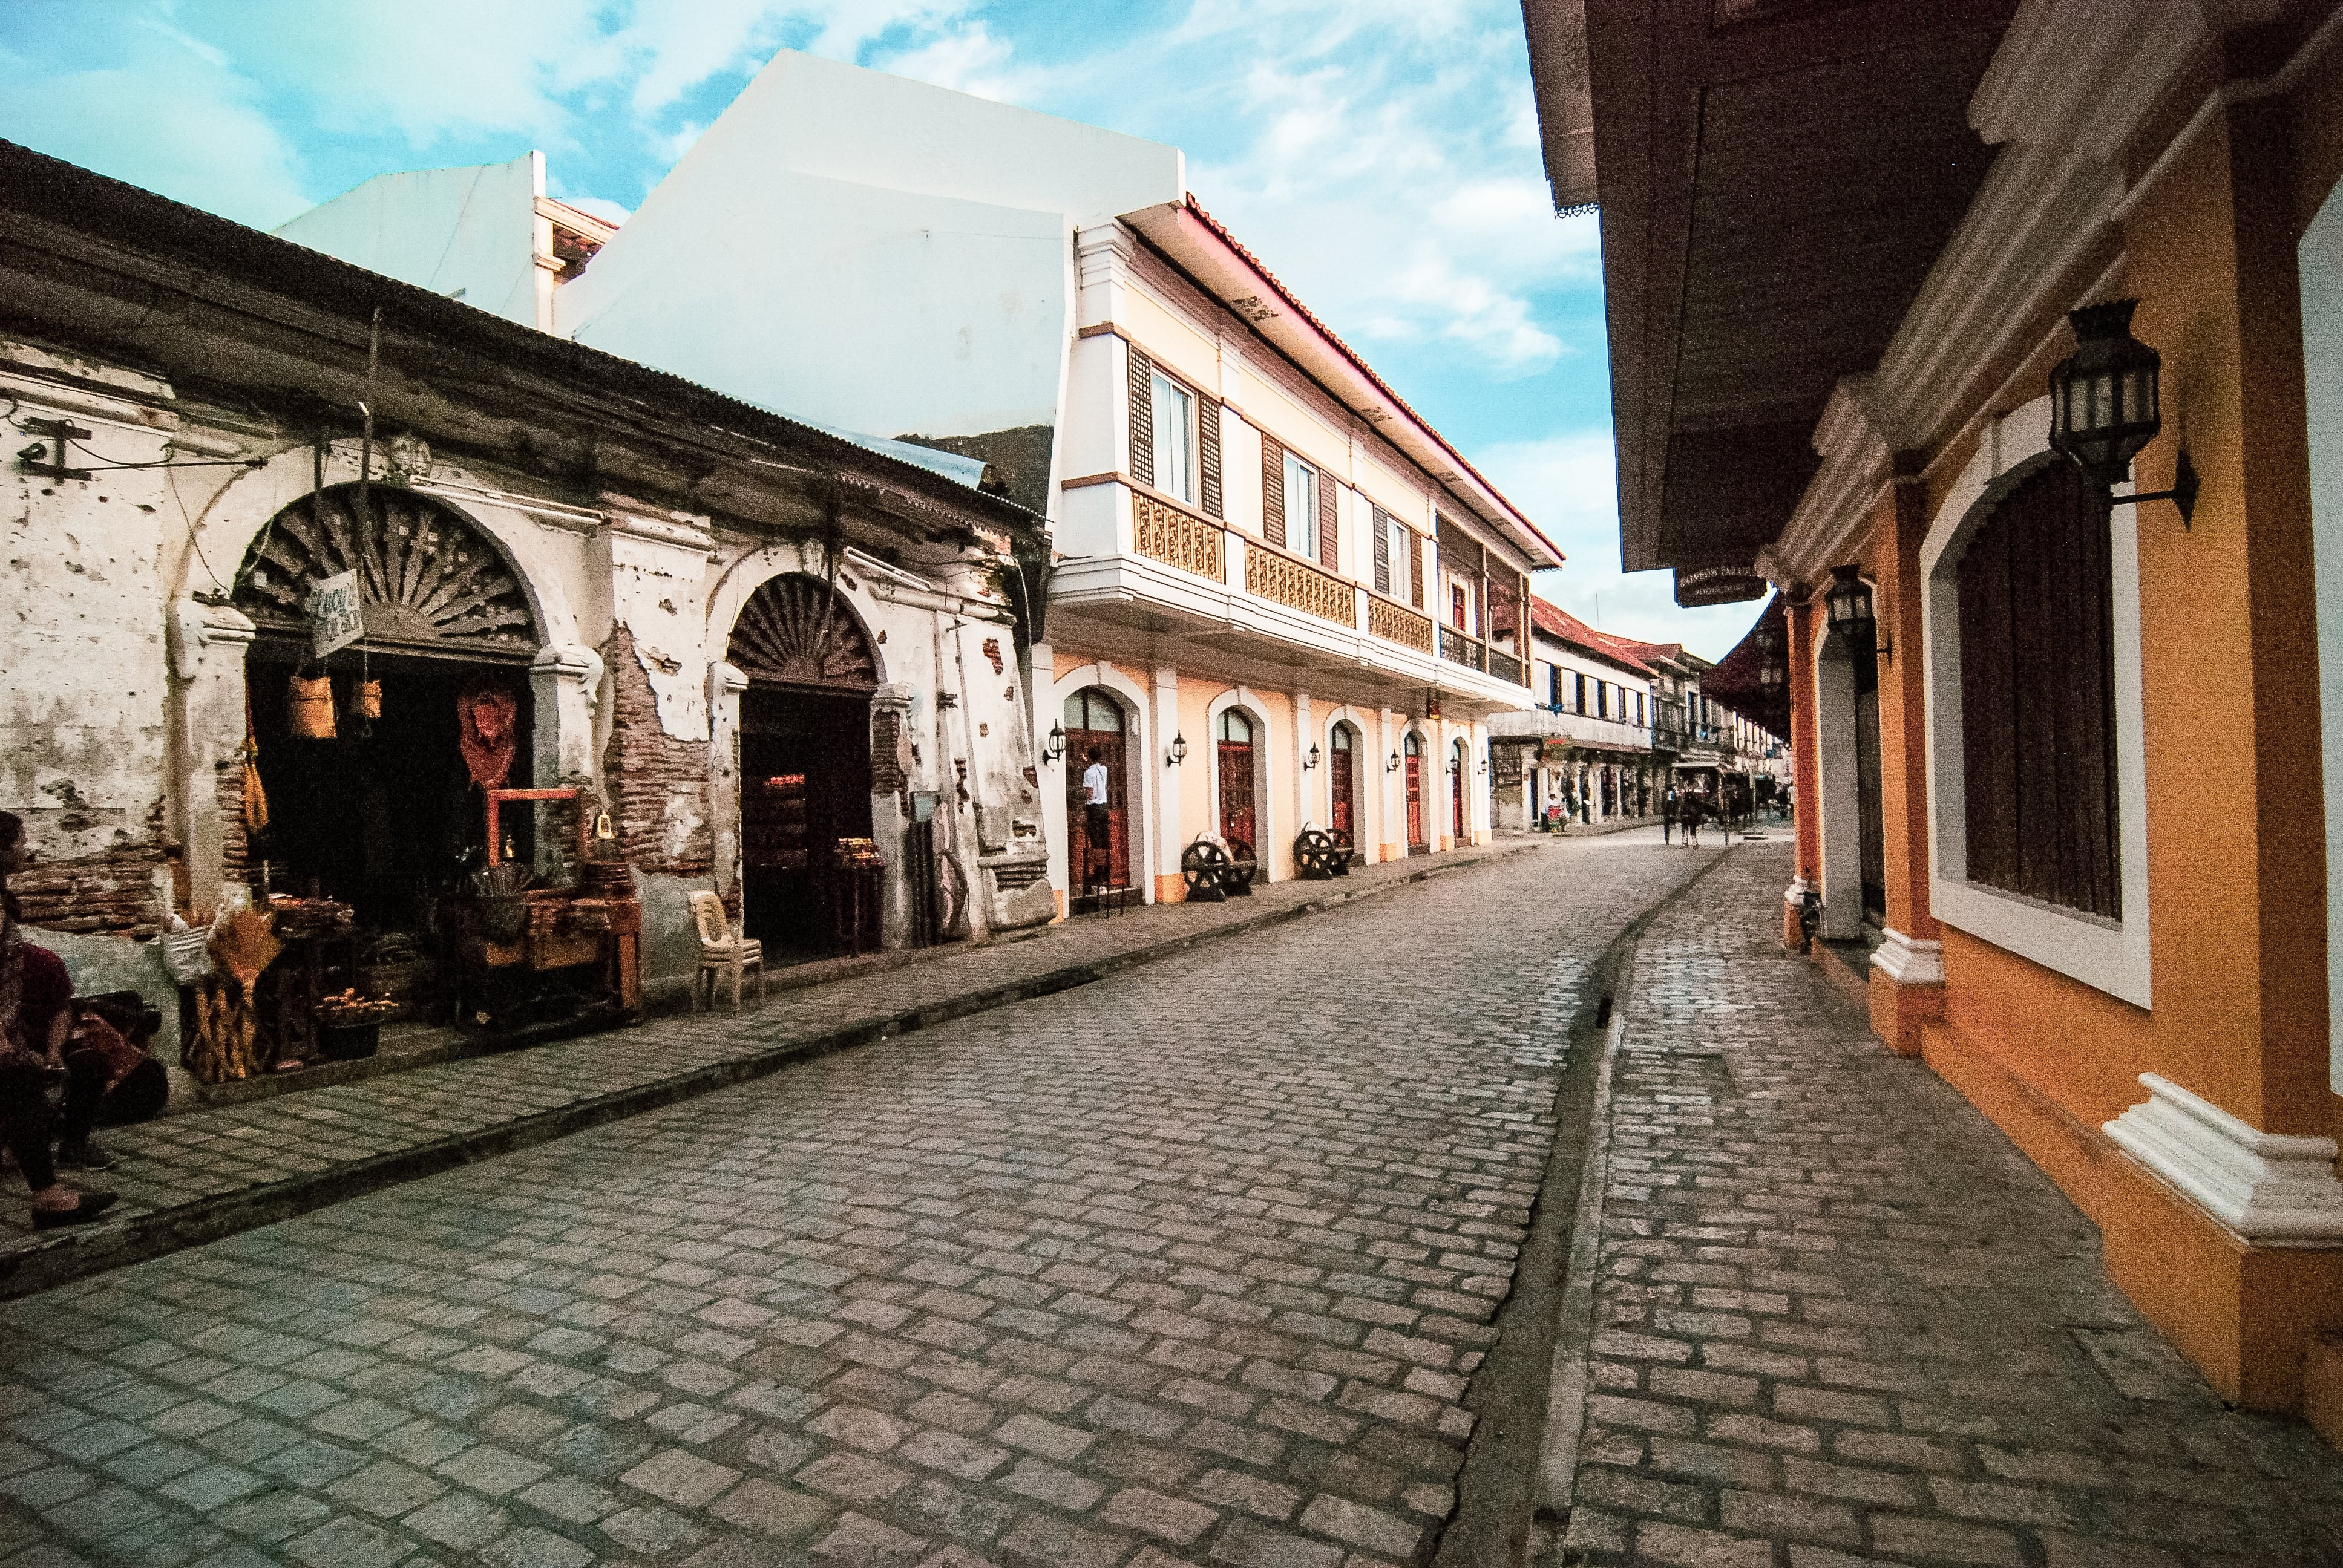 Clean streets of Calle Crisologo in Vigan